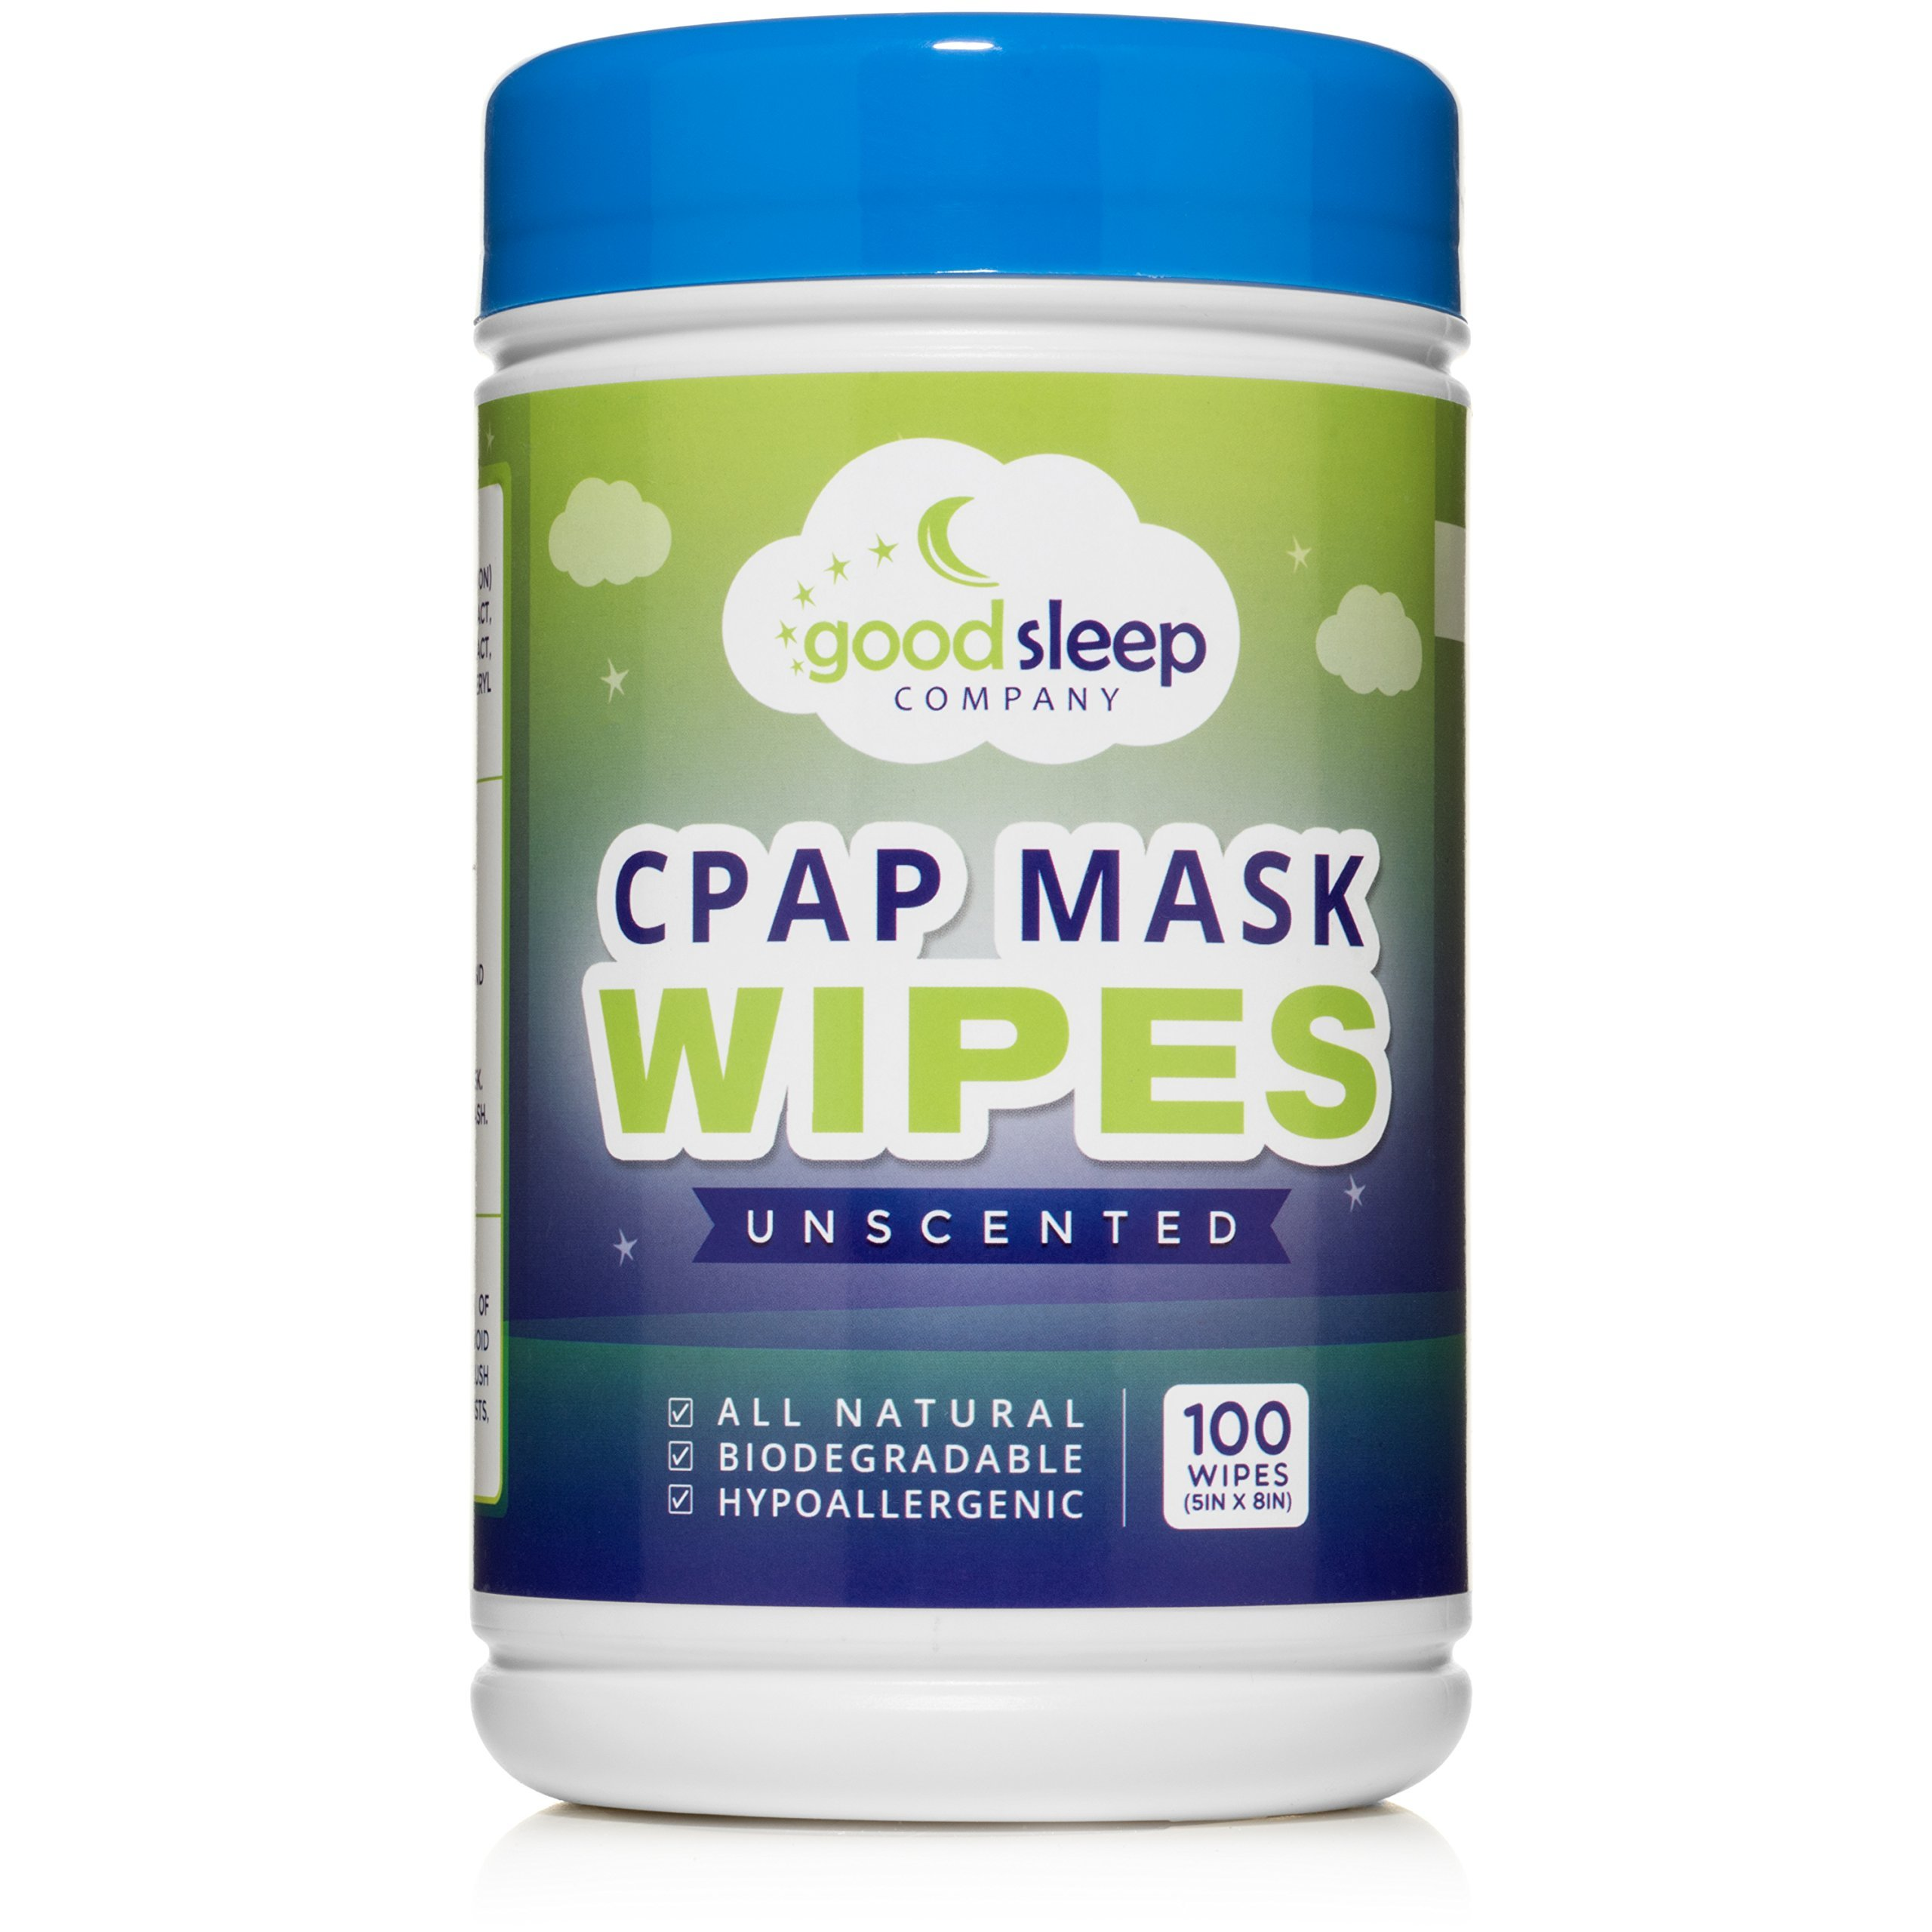 CPAP Mask Cleaning and Sanitizing Wipes, 100 Pack Unscented - Natural Formula, 100% Cotton and Biodegradable